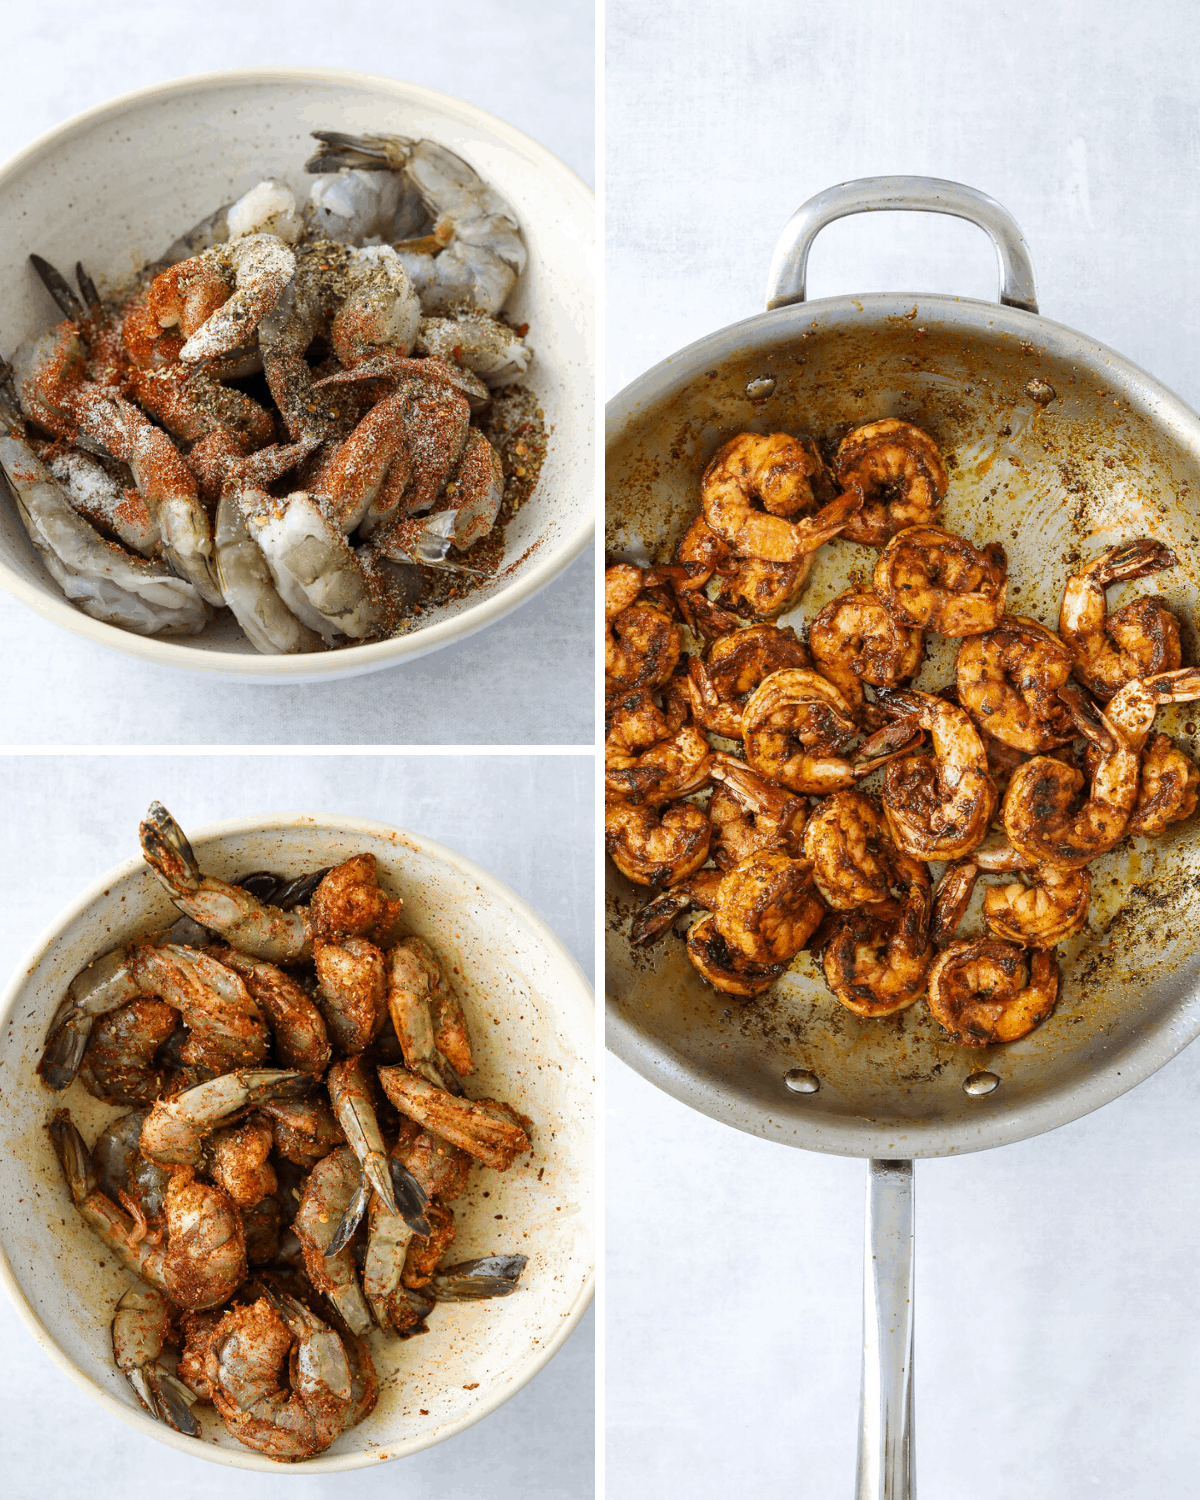 a collage of blackened shrimp recipe steps, a bowl of seasoned shrimp and a saute pan of shrimp cooking